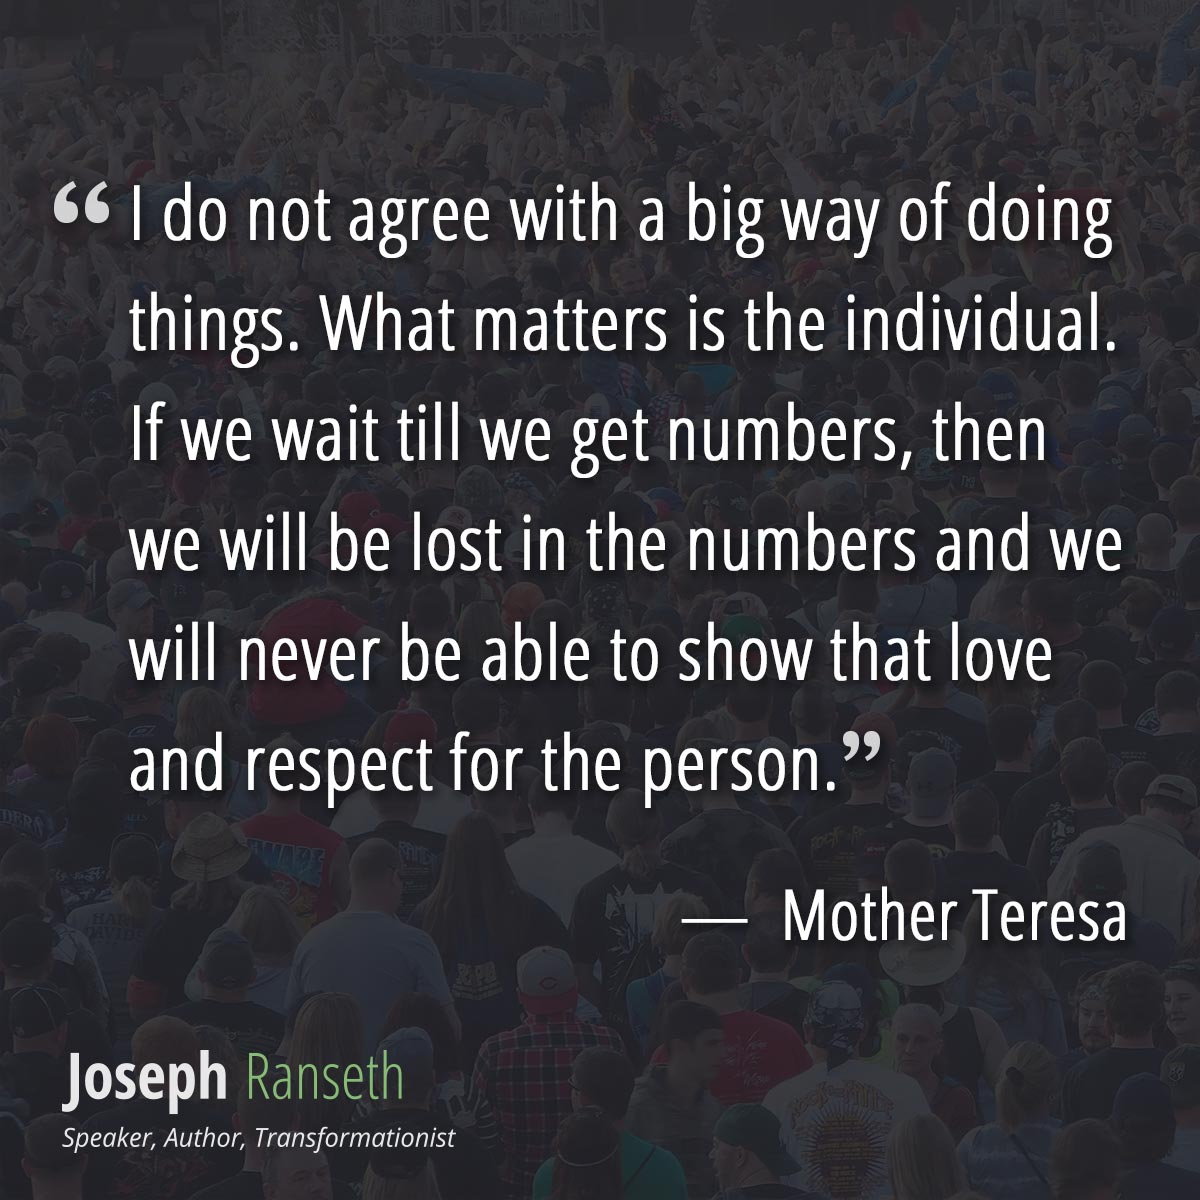 12 Inspiring Mother Teresa Quotes On The Anniversary Of Her Death Joseph Ranseth